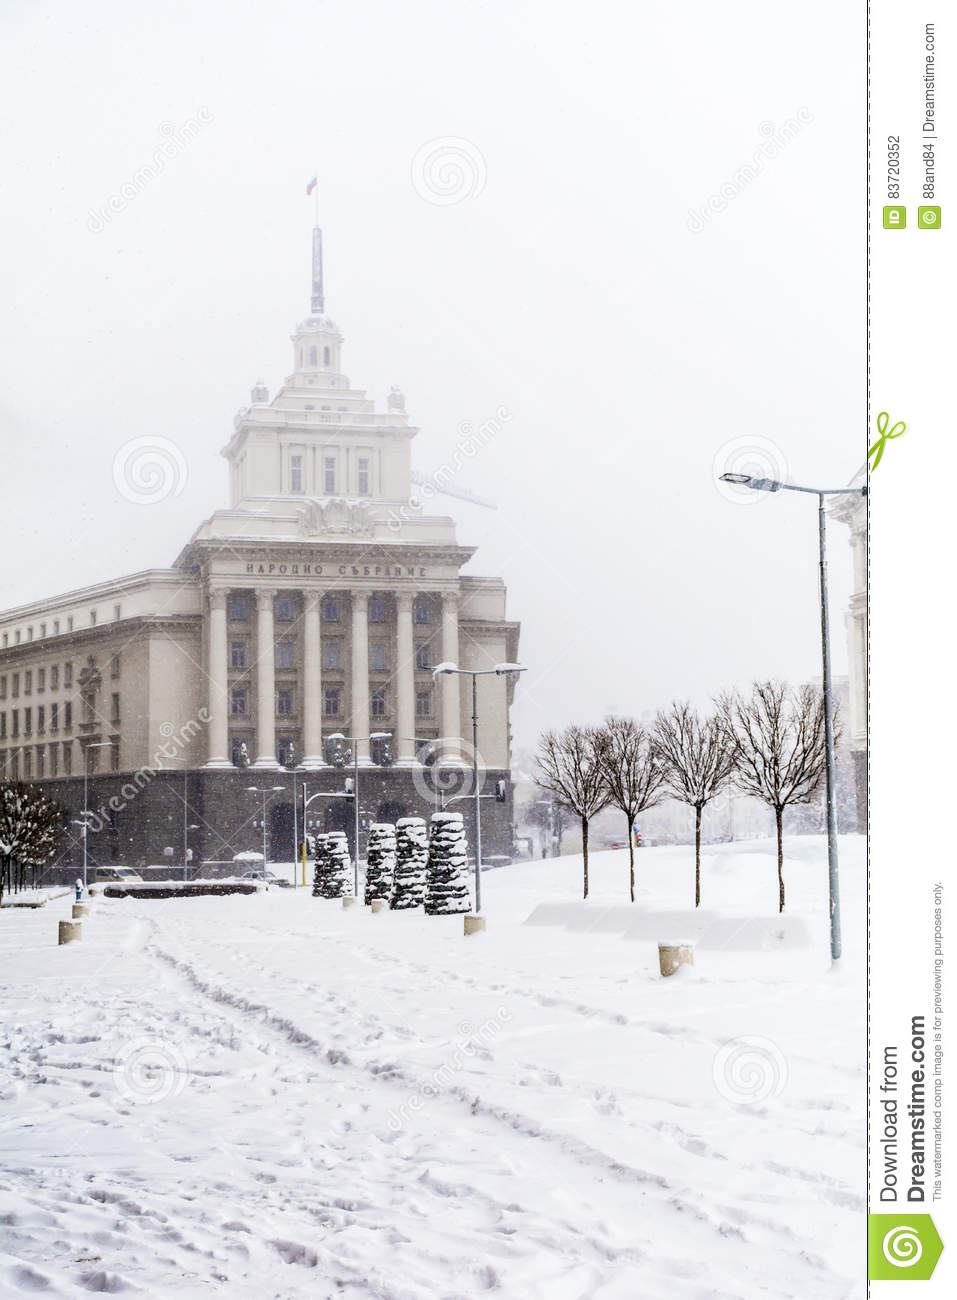 The Council Of Ministers Building In Central Sofia In The Winter Stock Photo